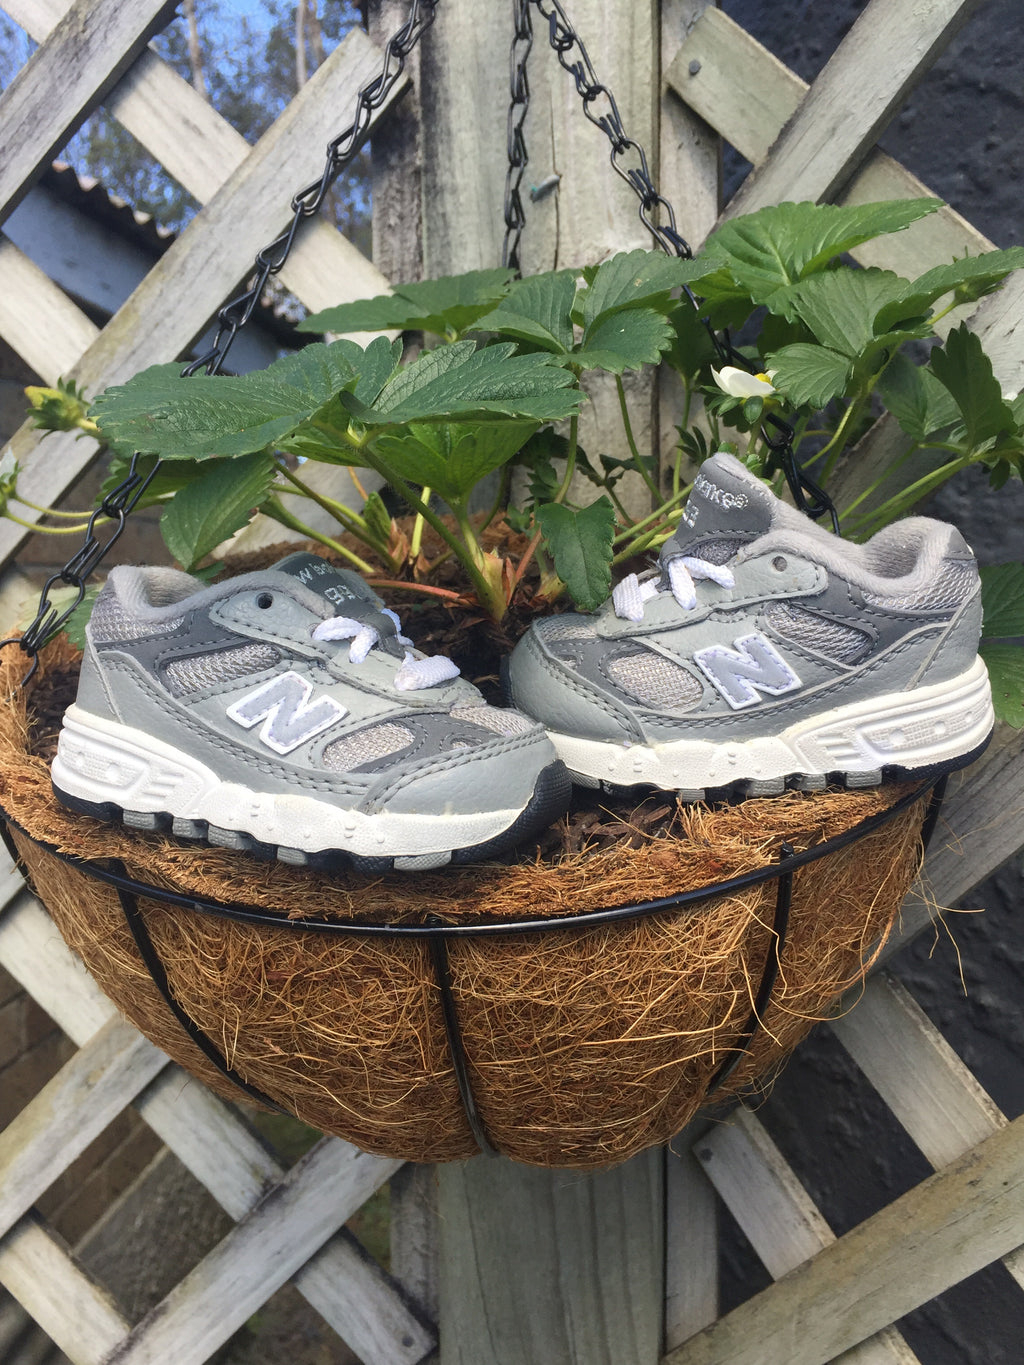 Cute wee Sz 2C New Balance 993